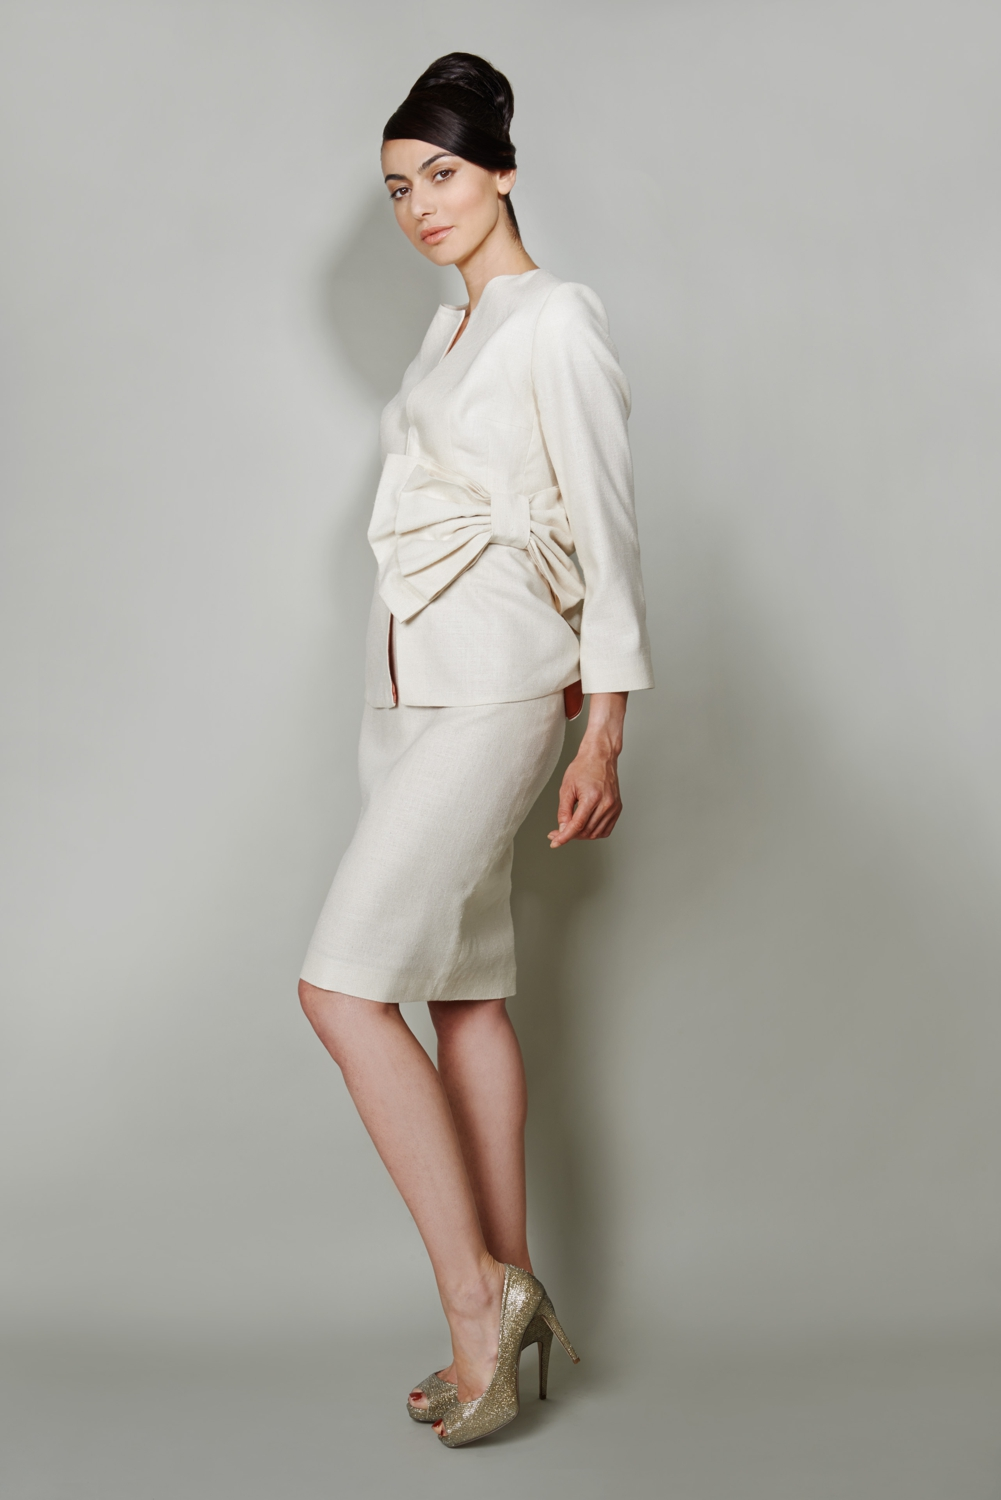 Ivory silk occasion wear suit with bow detail